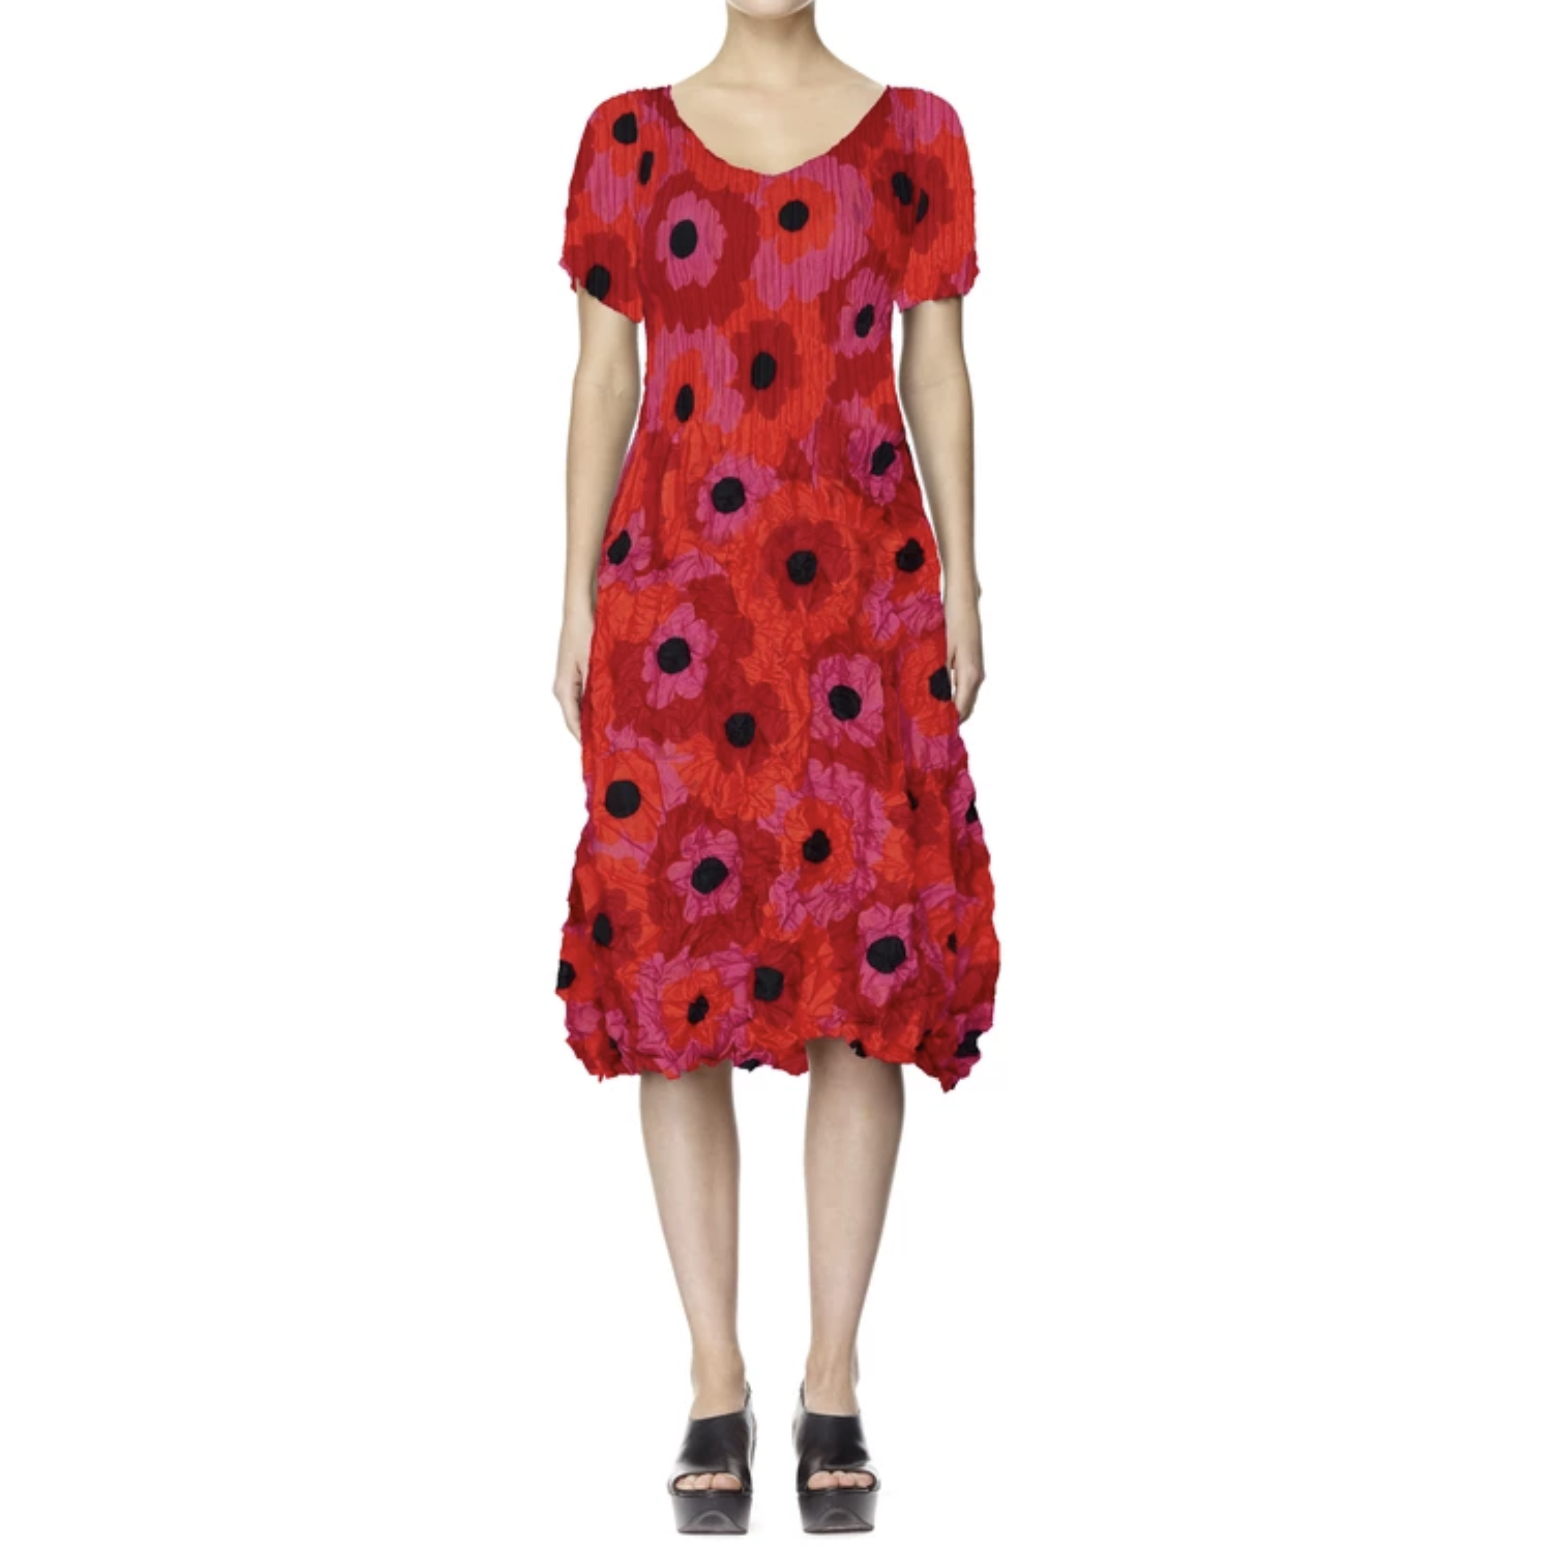 Alquema Smash Dress in Cerise Flower Spot short sleeves.